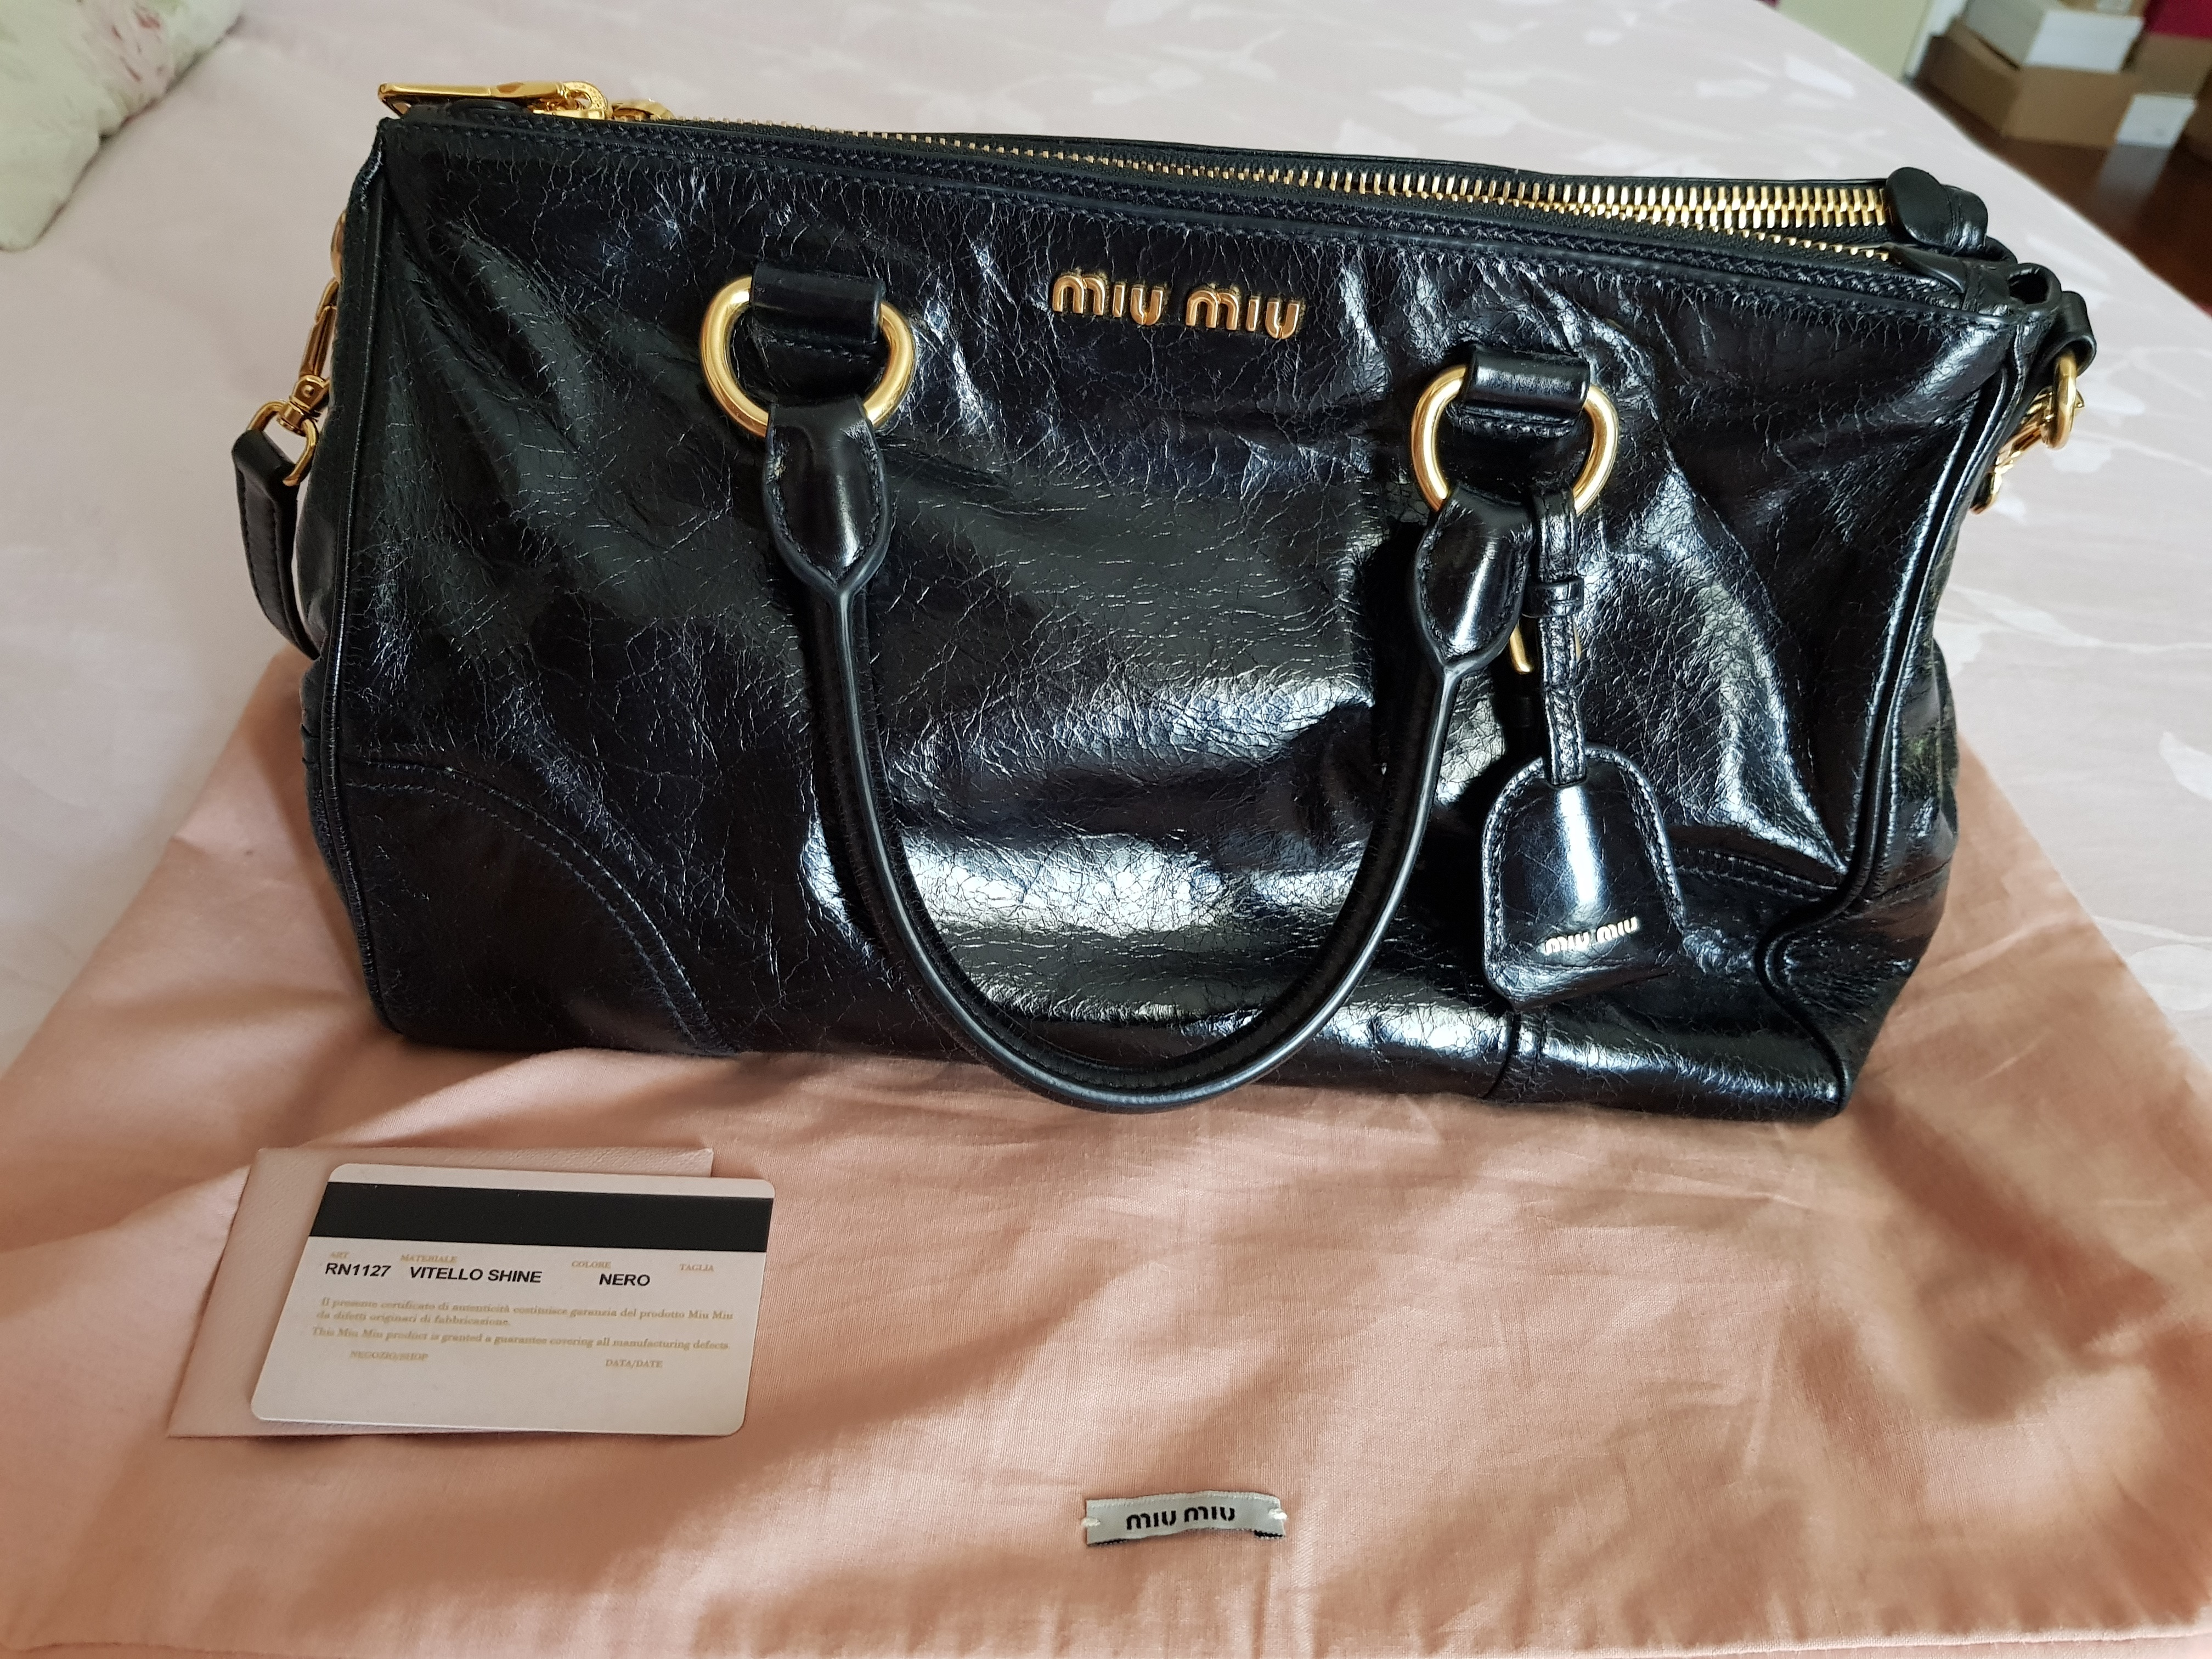 df04b42b08c1 Miu Miu vitello shine bag Measurement   14.75